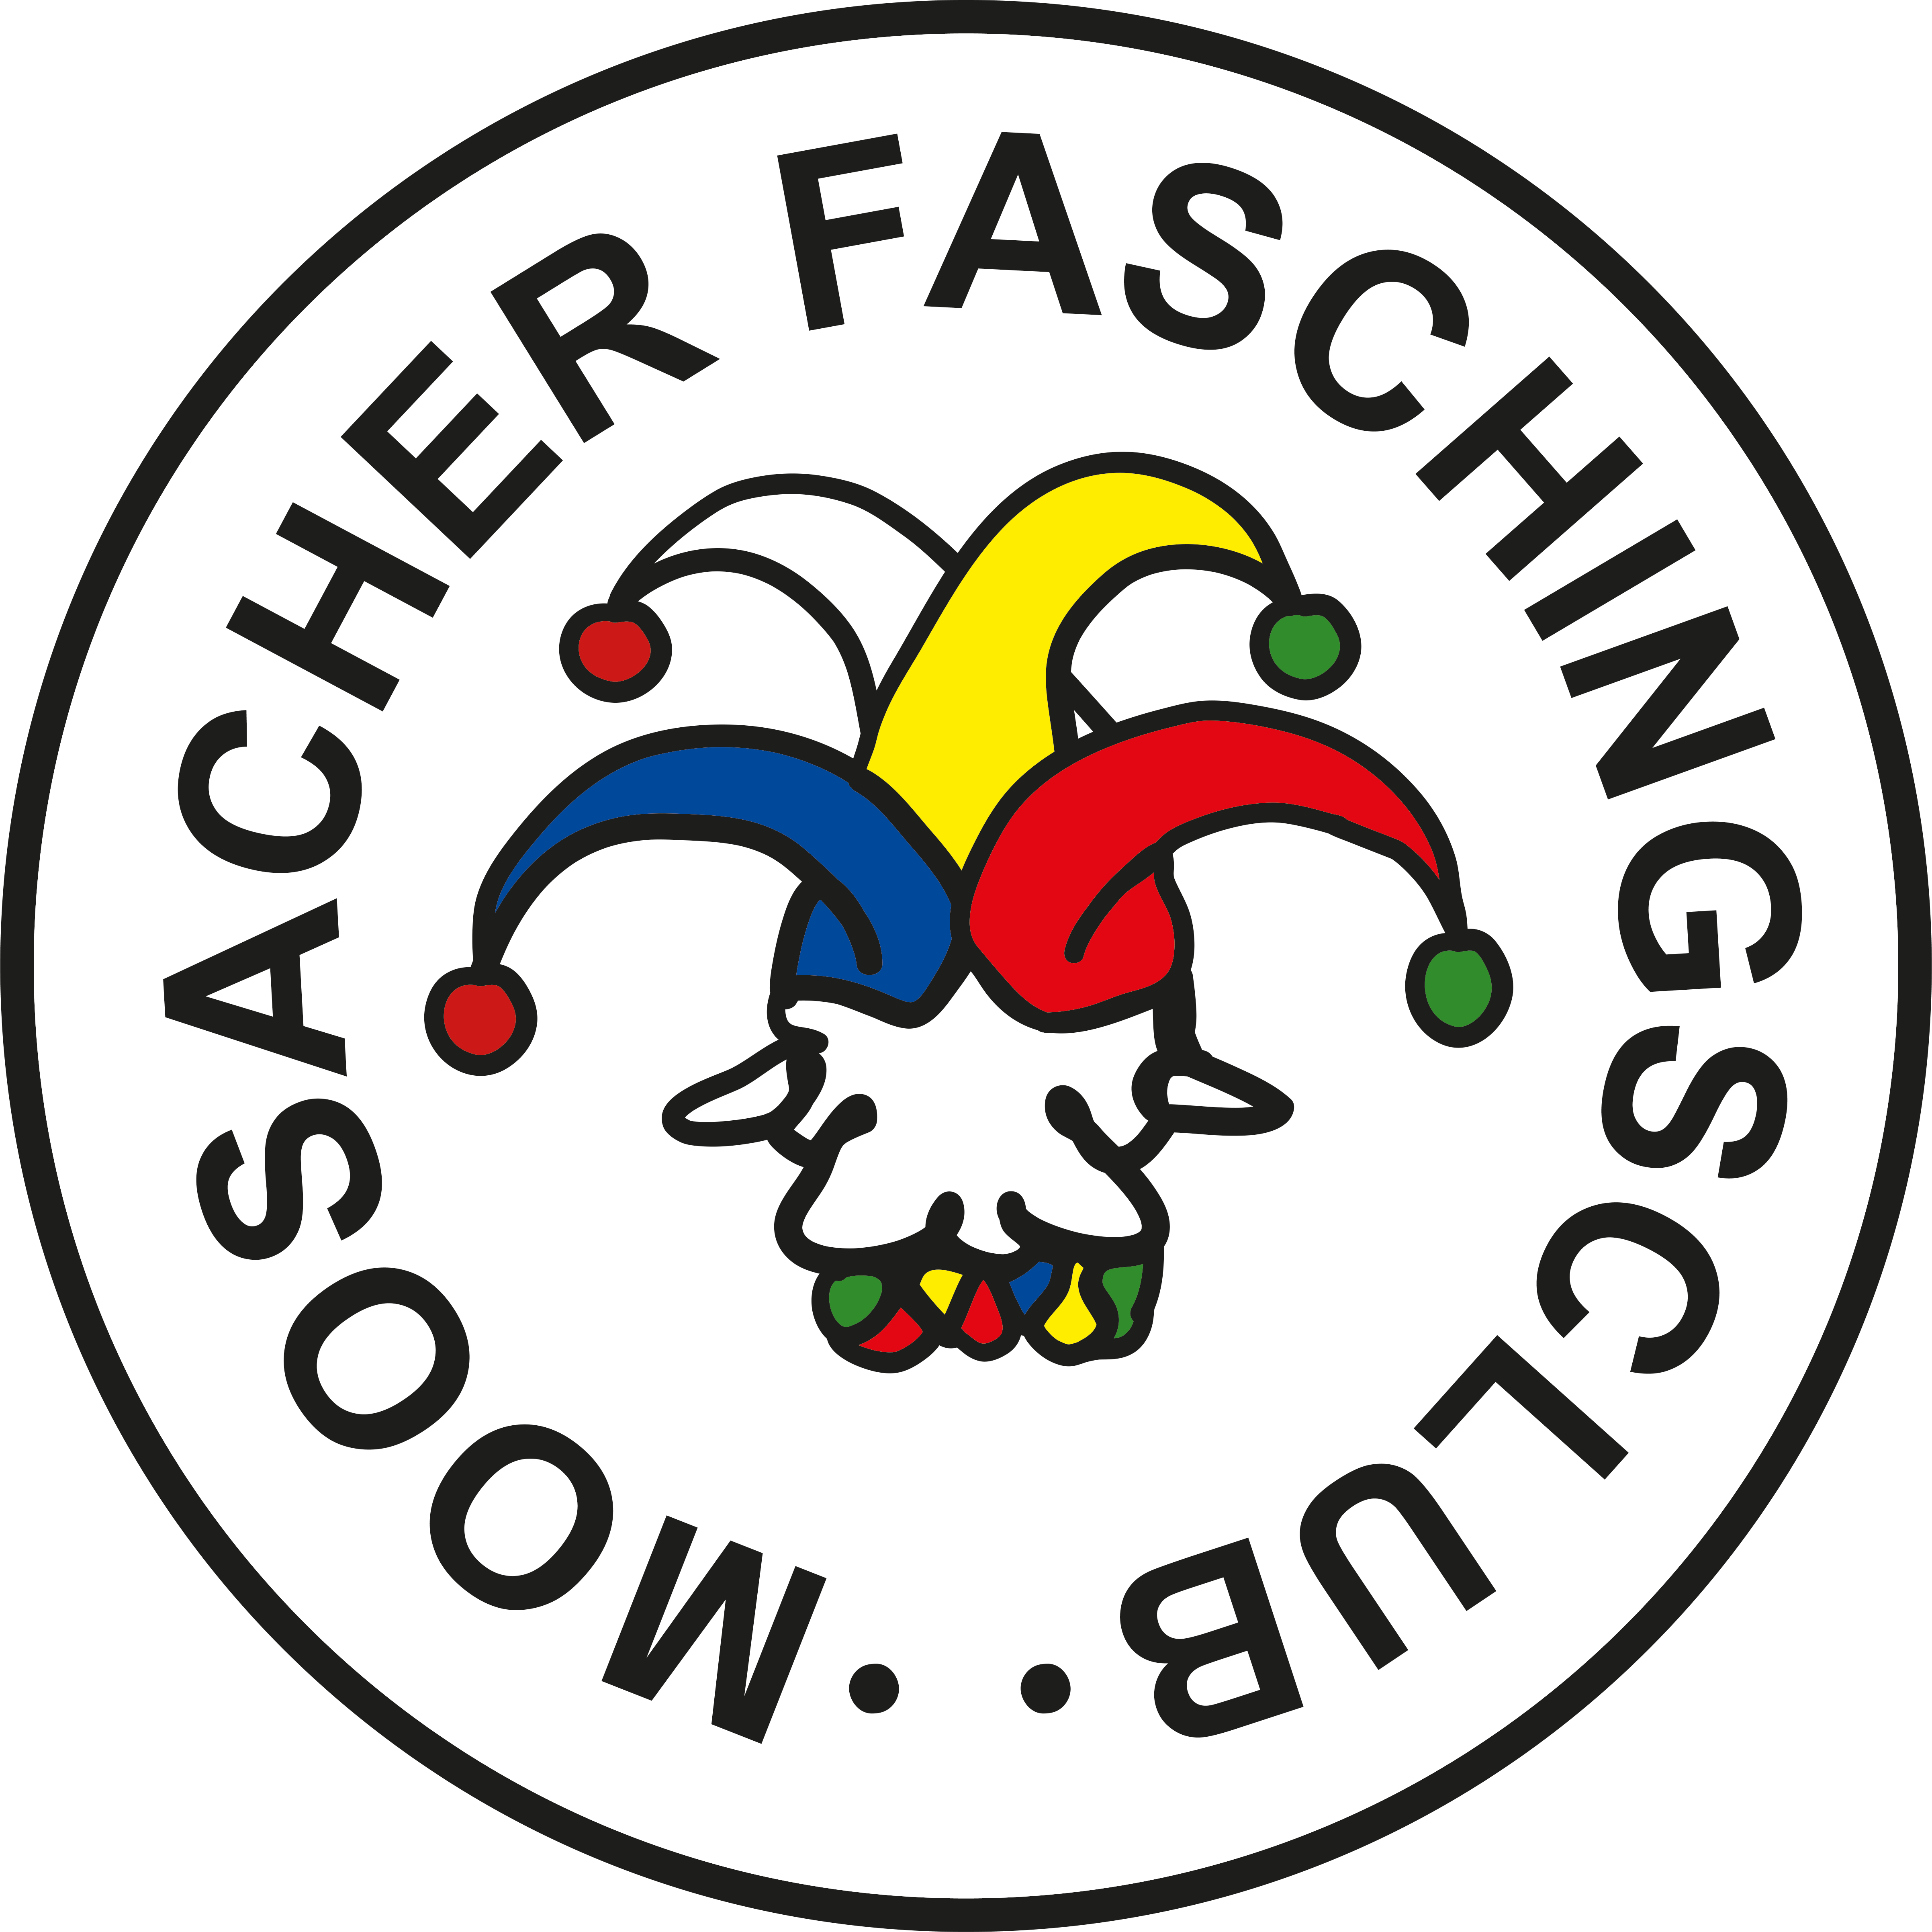 Moosacher Faschingsclub e.V.